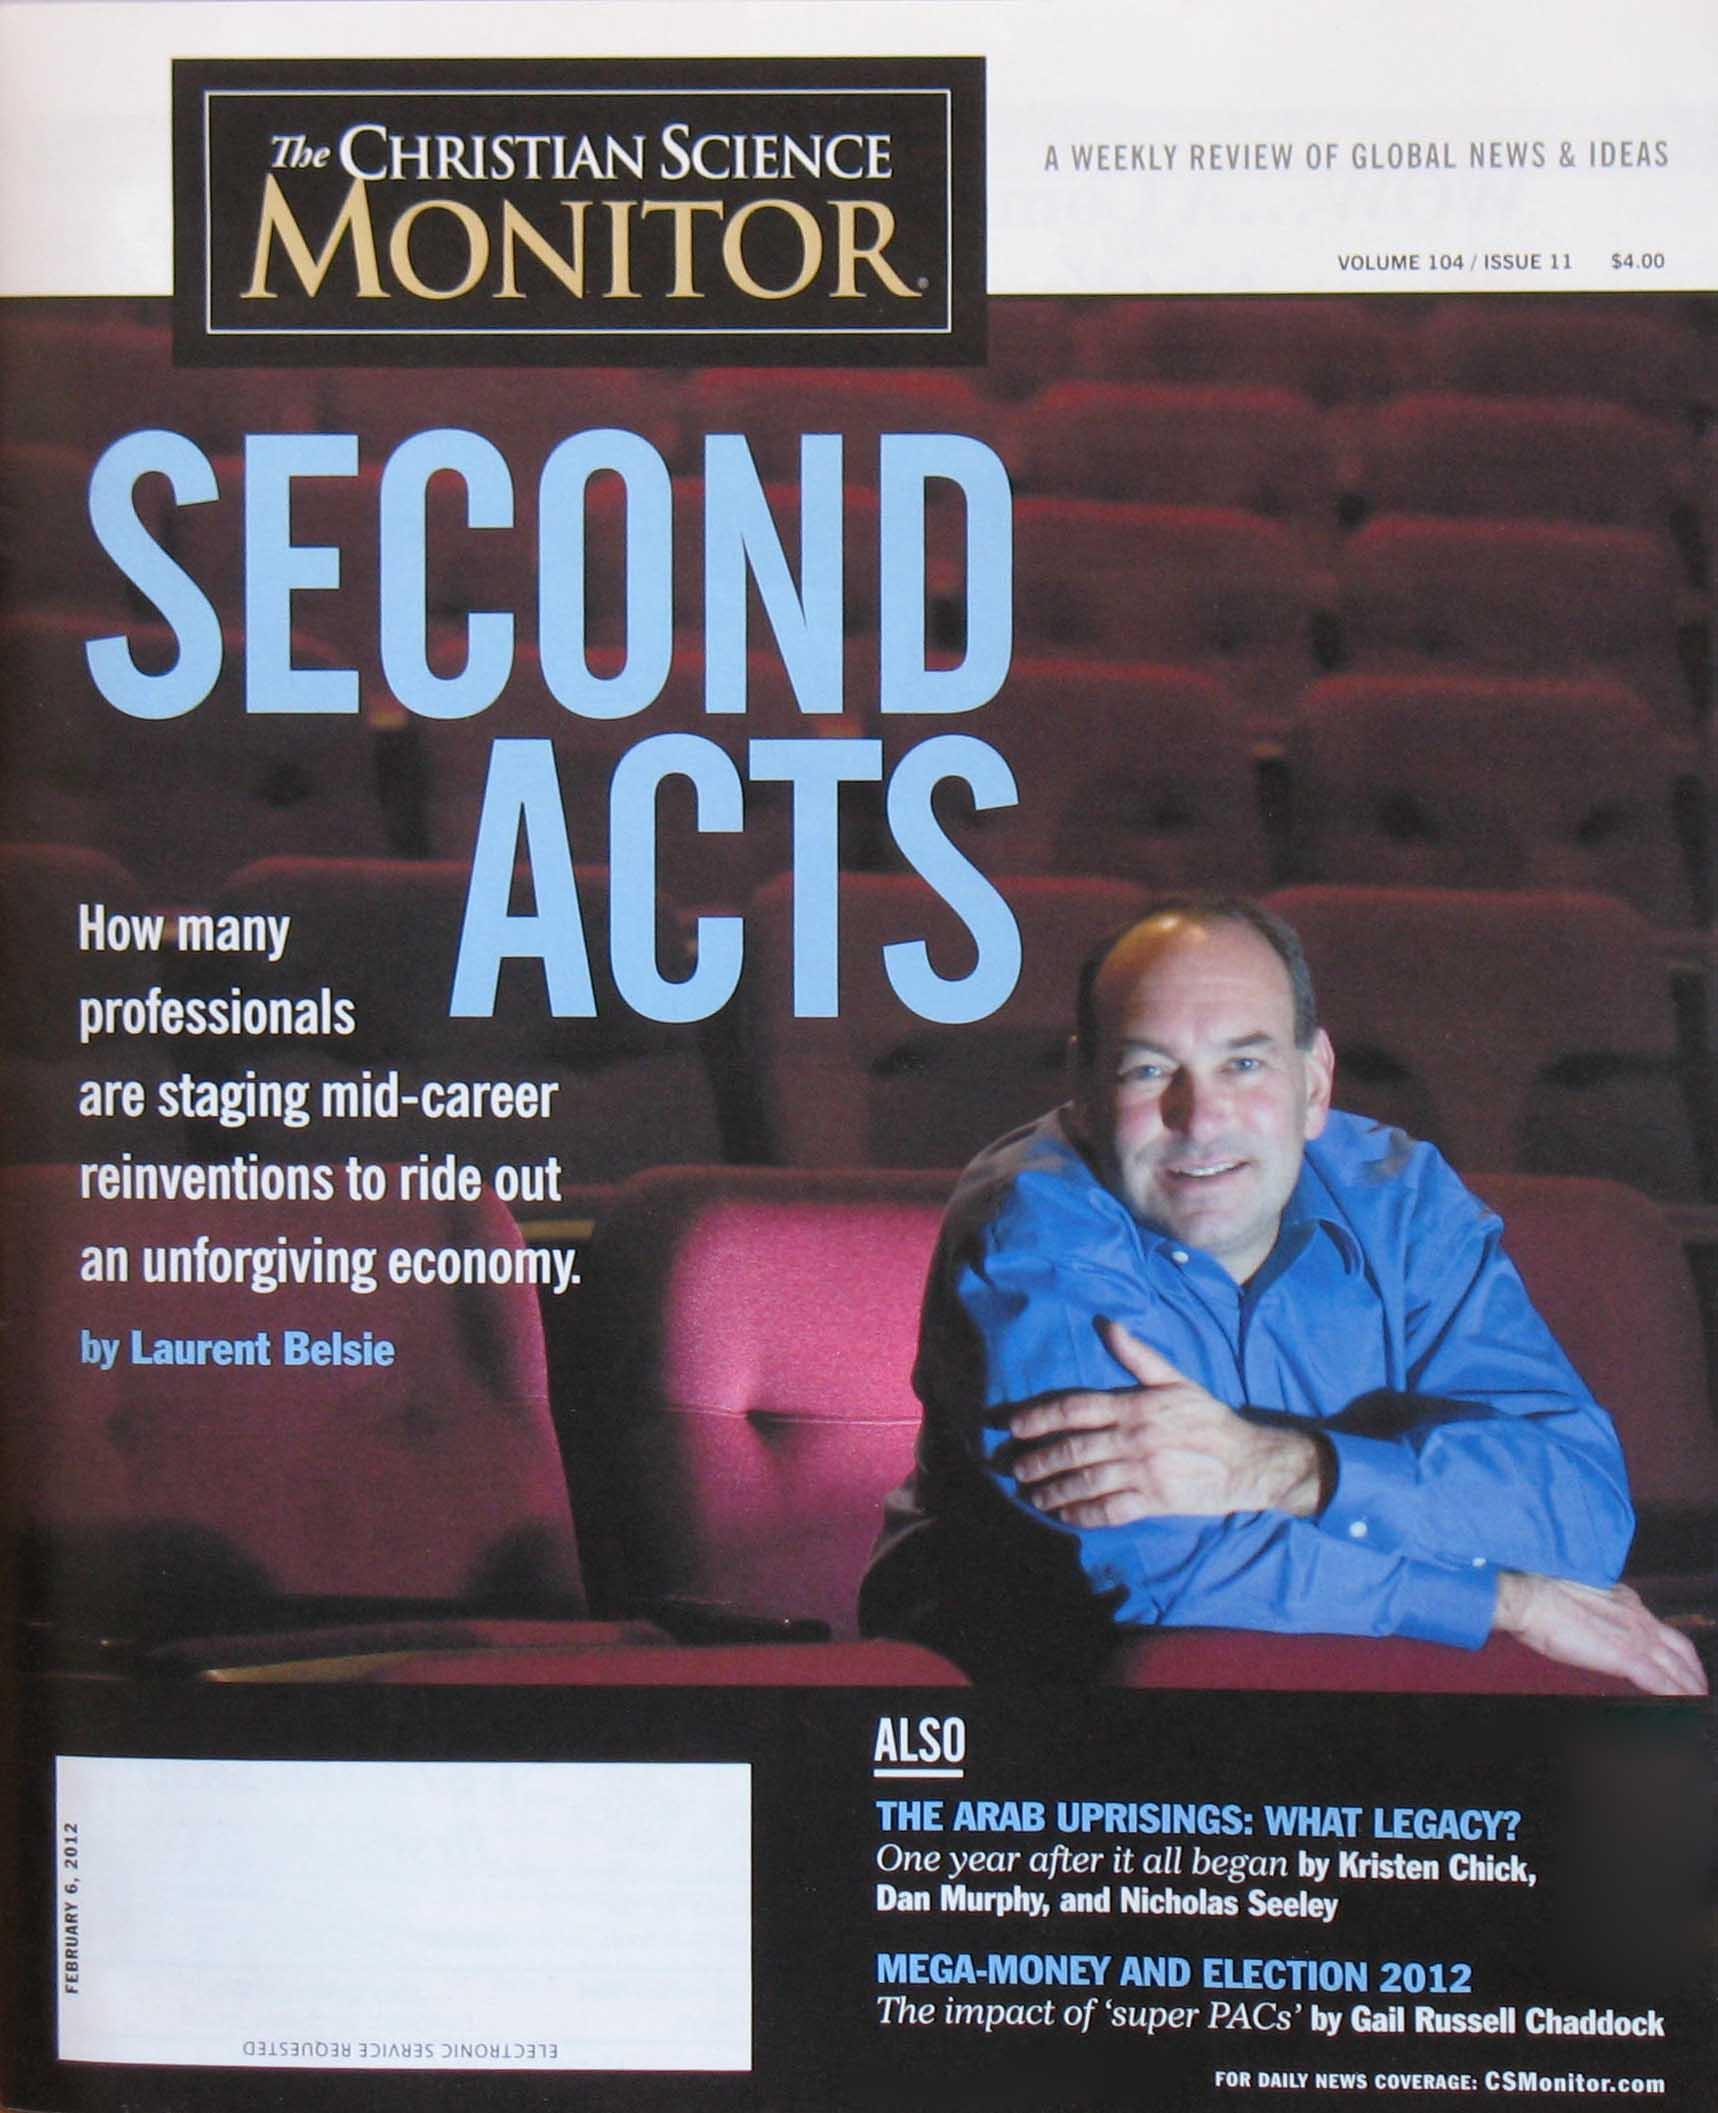 Ivy League comedian Shaun Eli is the cover story in the Christian Science Monitor